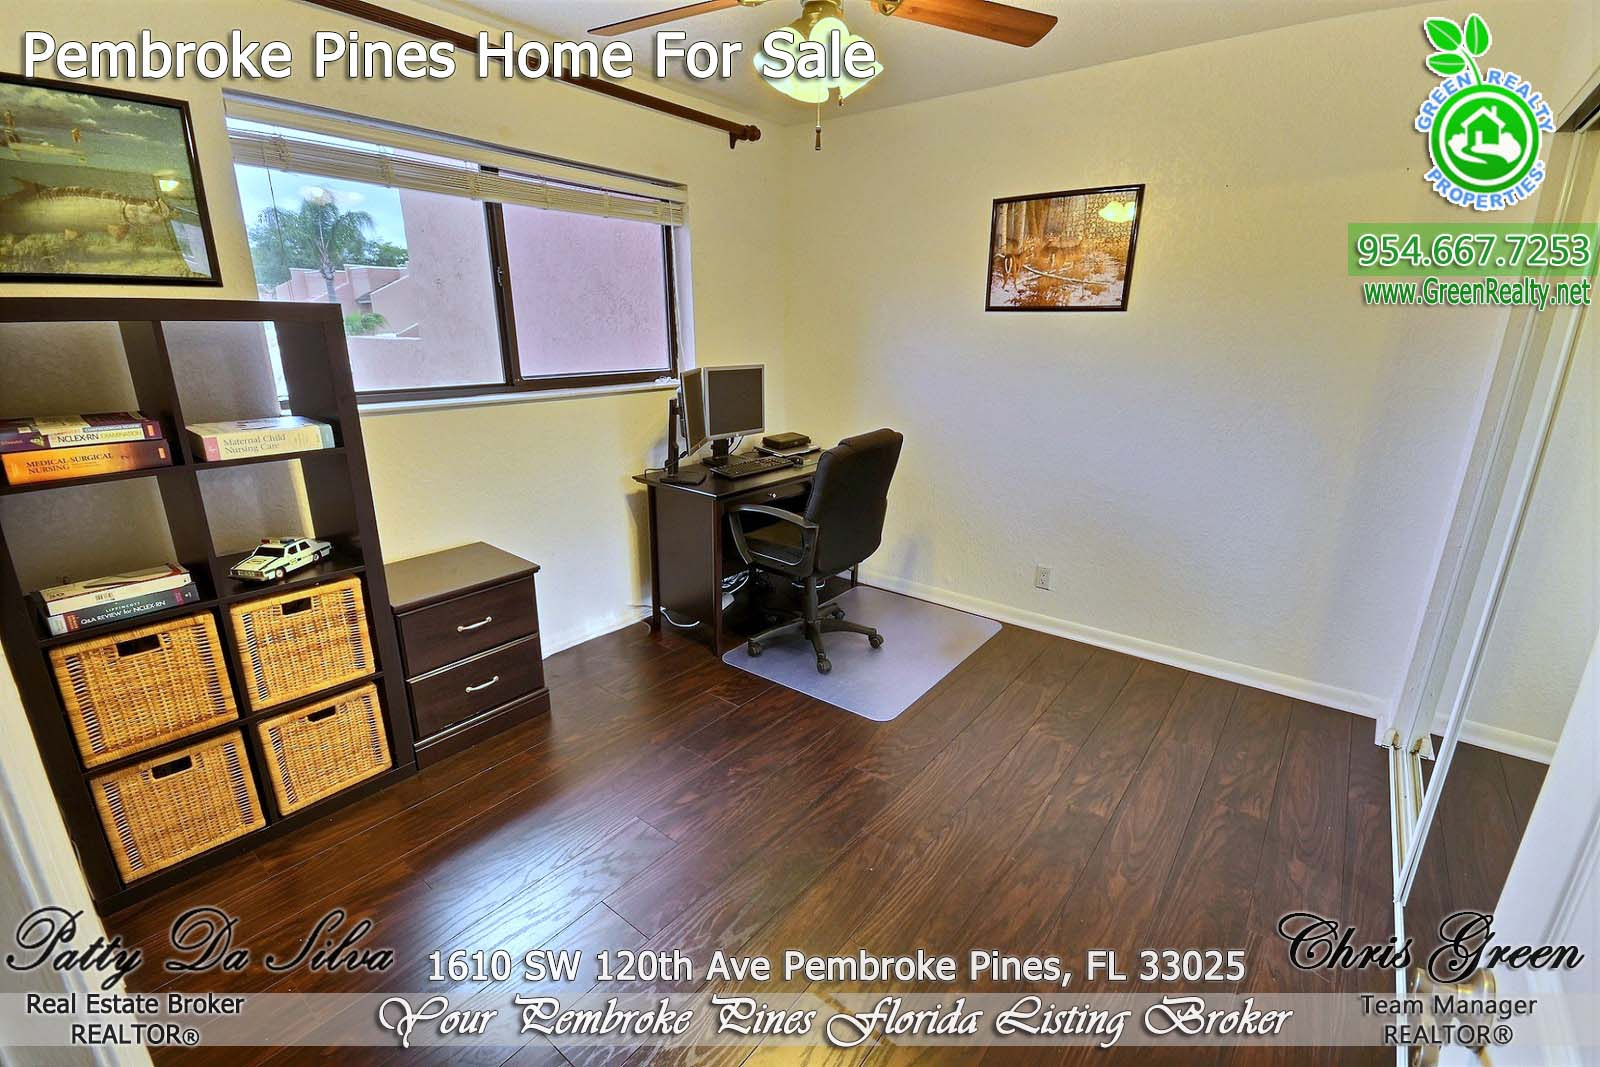 22 Homes For Sale in Pembroke Pines (4)